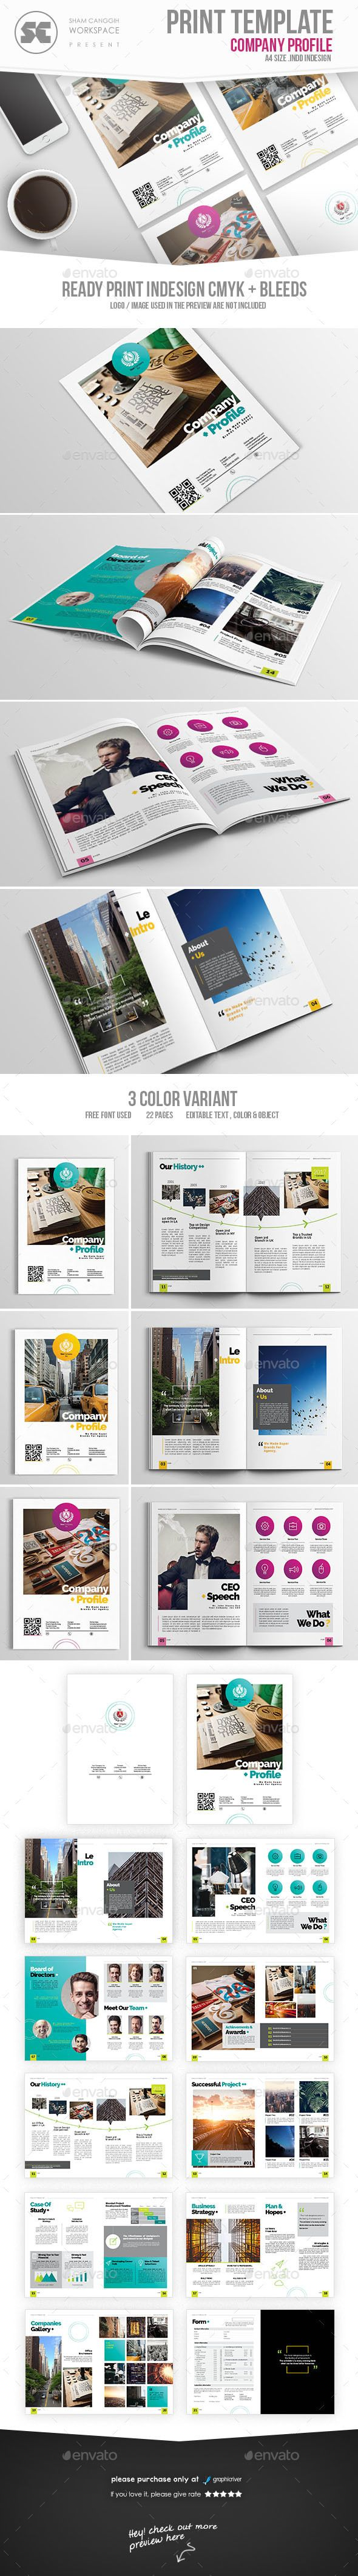 214 best Company Profile Templates images on Pinterest   Brochure ...